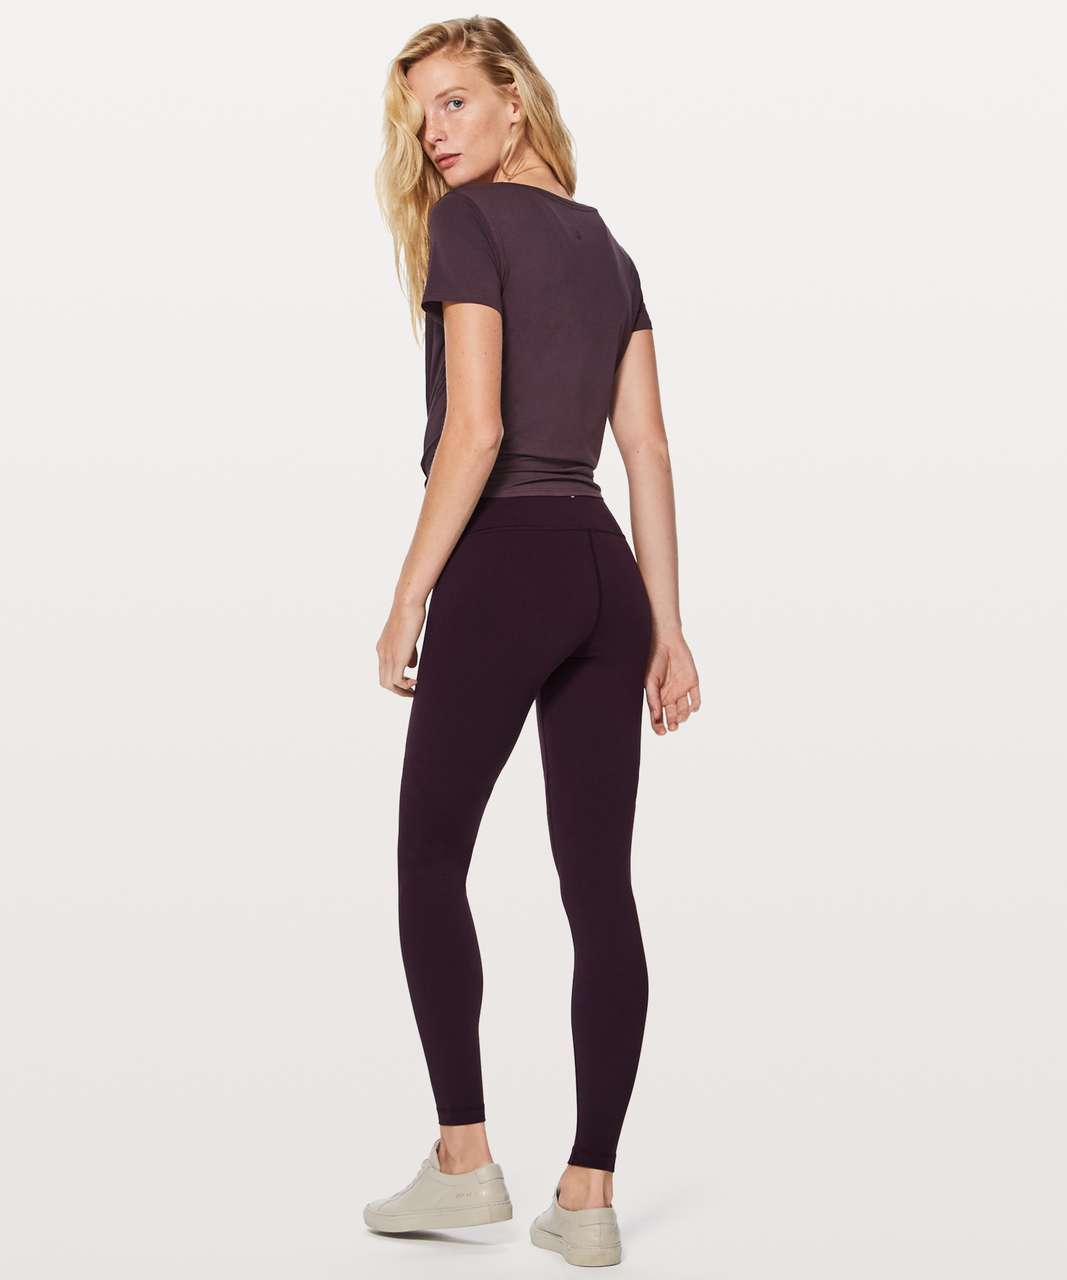 Lululemon Wunder Under Hi-Rise Tight (Tall) Full-On Luon Black Cherry